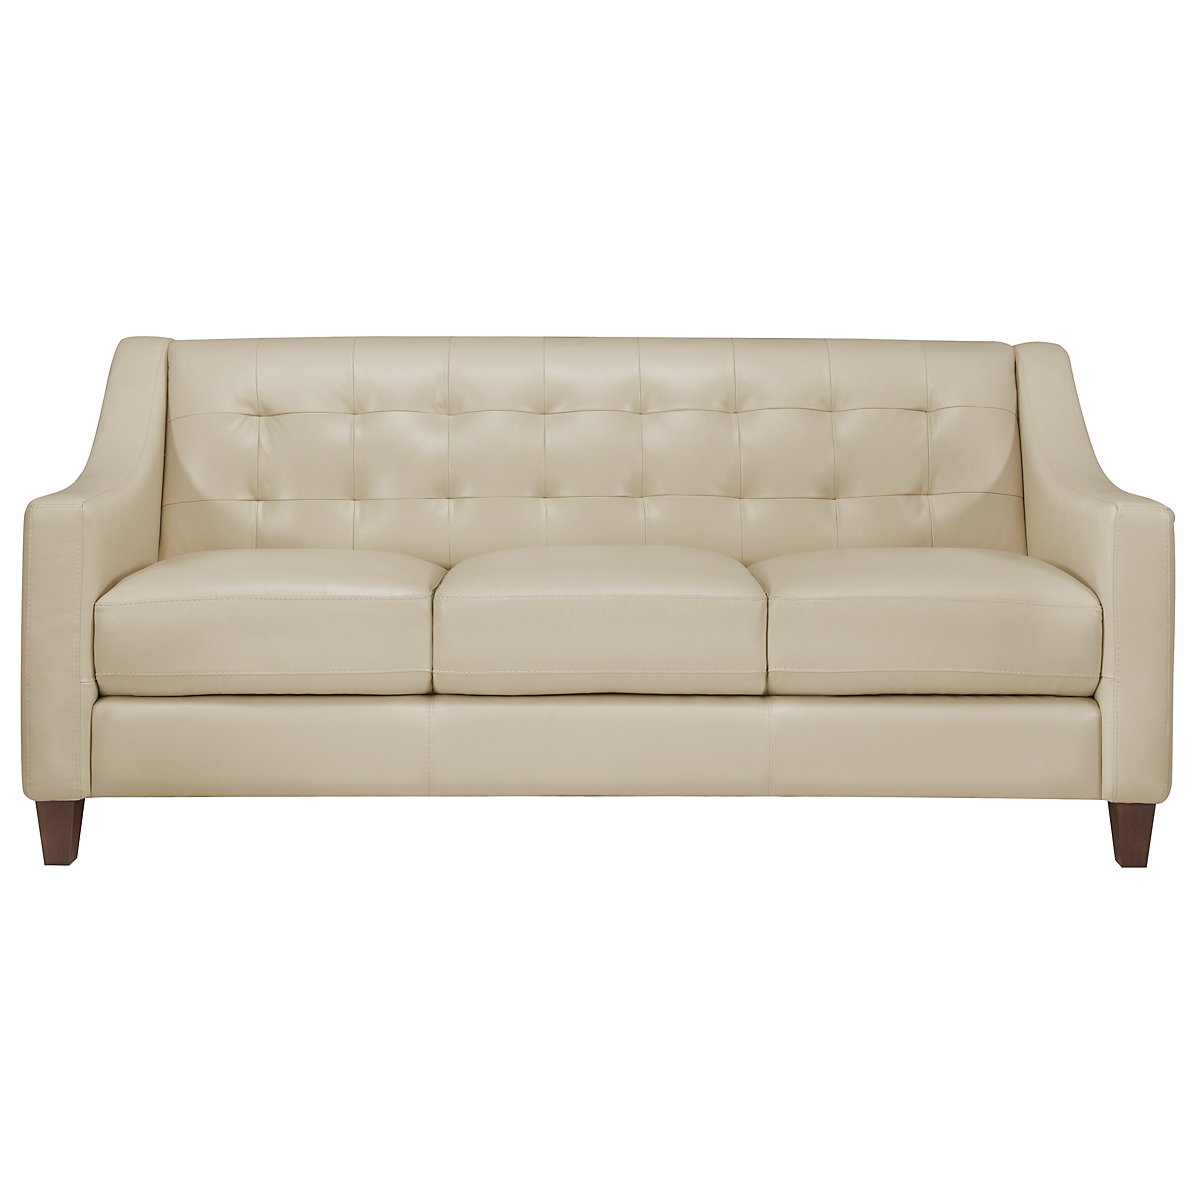 Elise Lt Taupe Leather Sofa